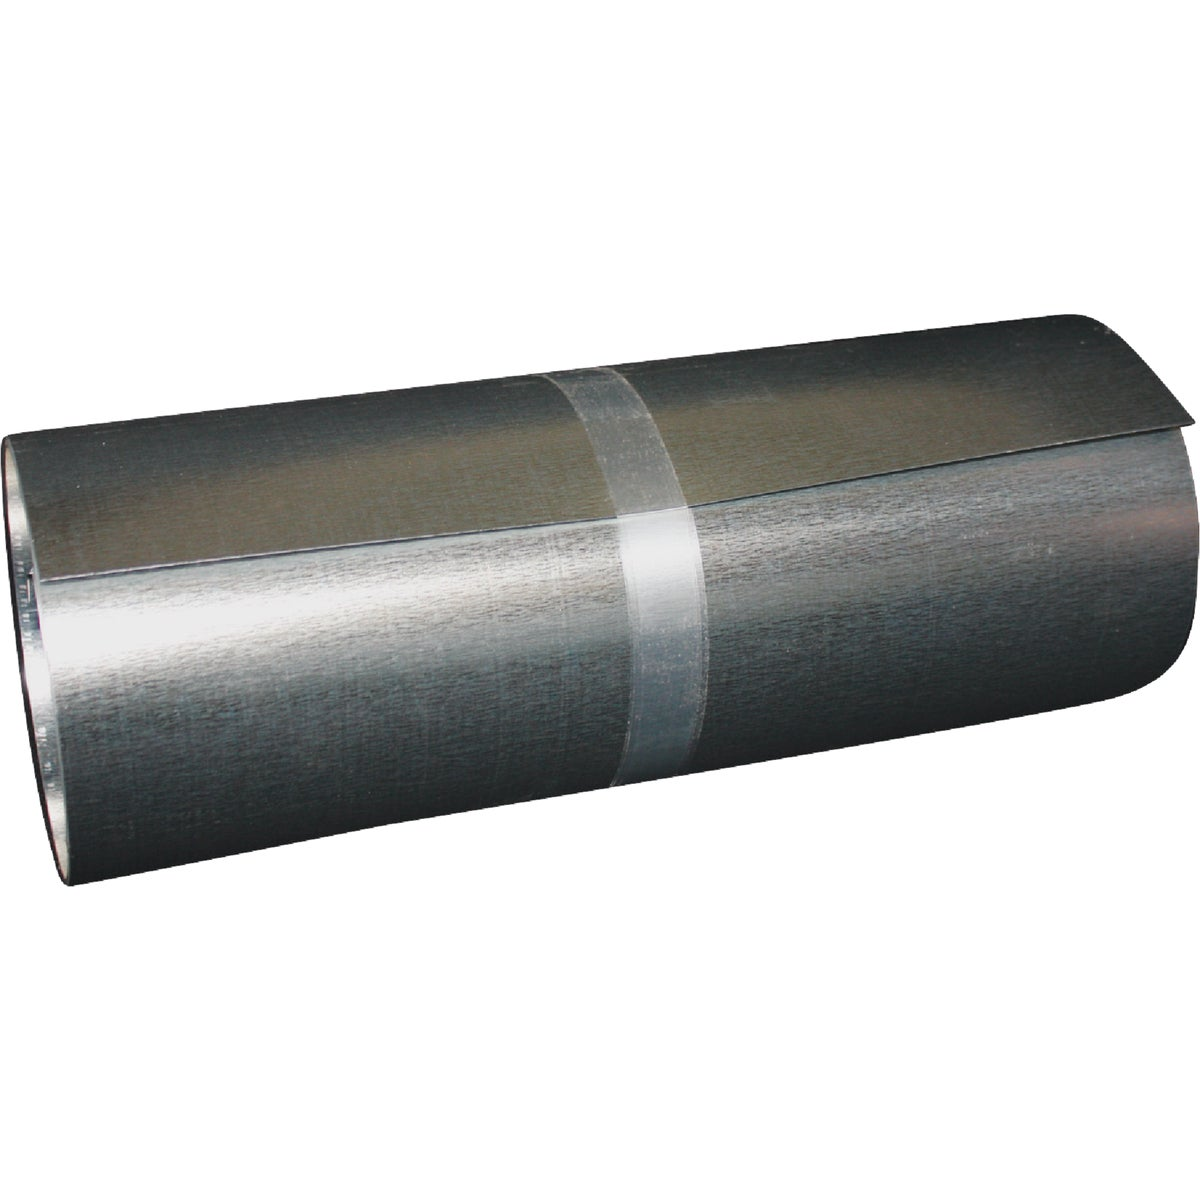 "6""X10' GALV ROLL VALLEY - 30013-GV10 by Klauer Mfg Co"